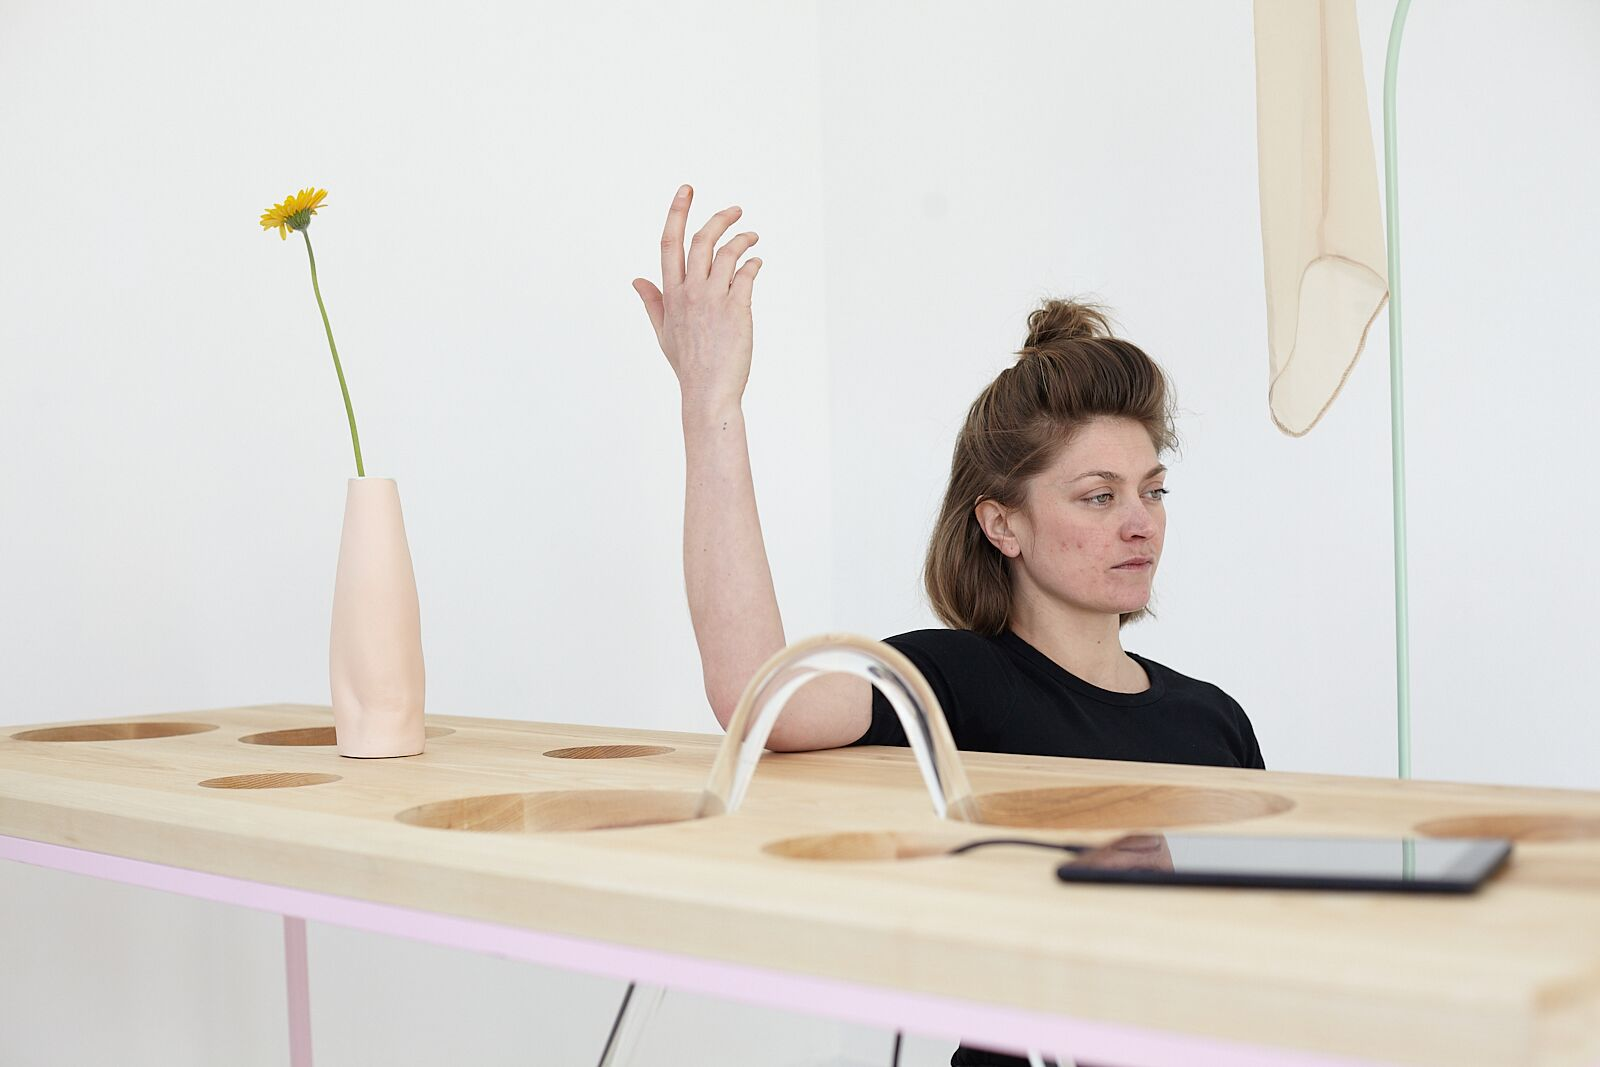 Ben Cain, Passive Imperative Participation Vibe, documentation of performance with Emma Hoette, 2018. Photography: Andrew Magurran (Ben Cain - In Conversation 0)